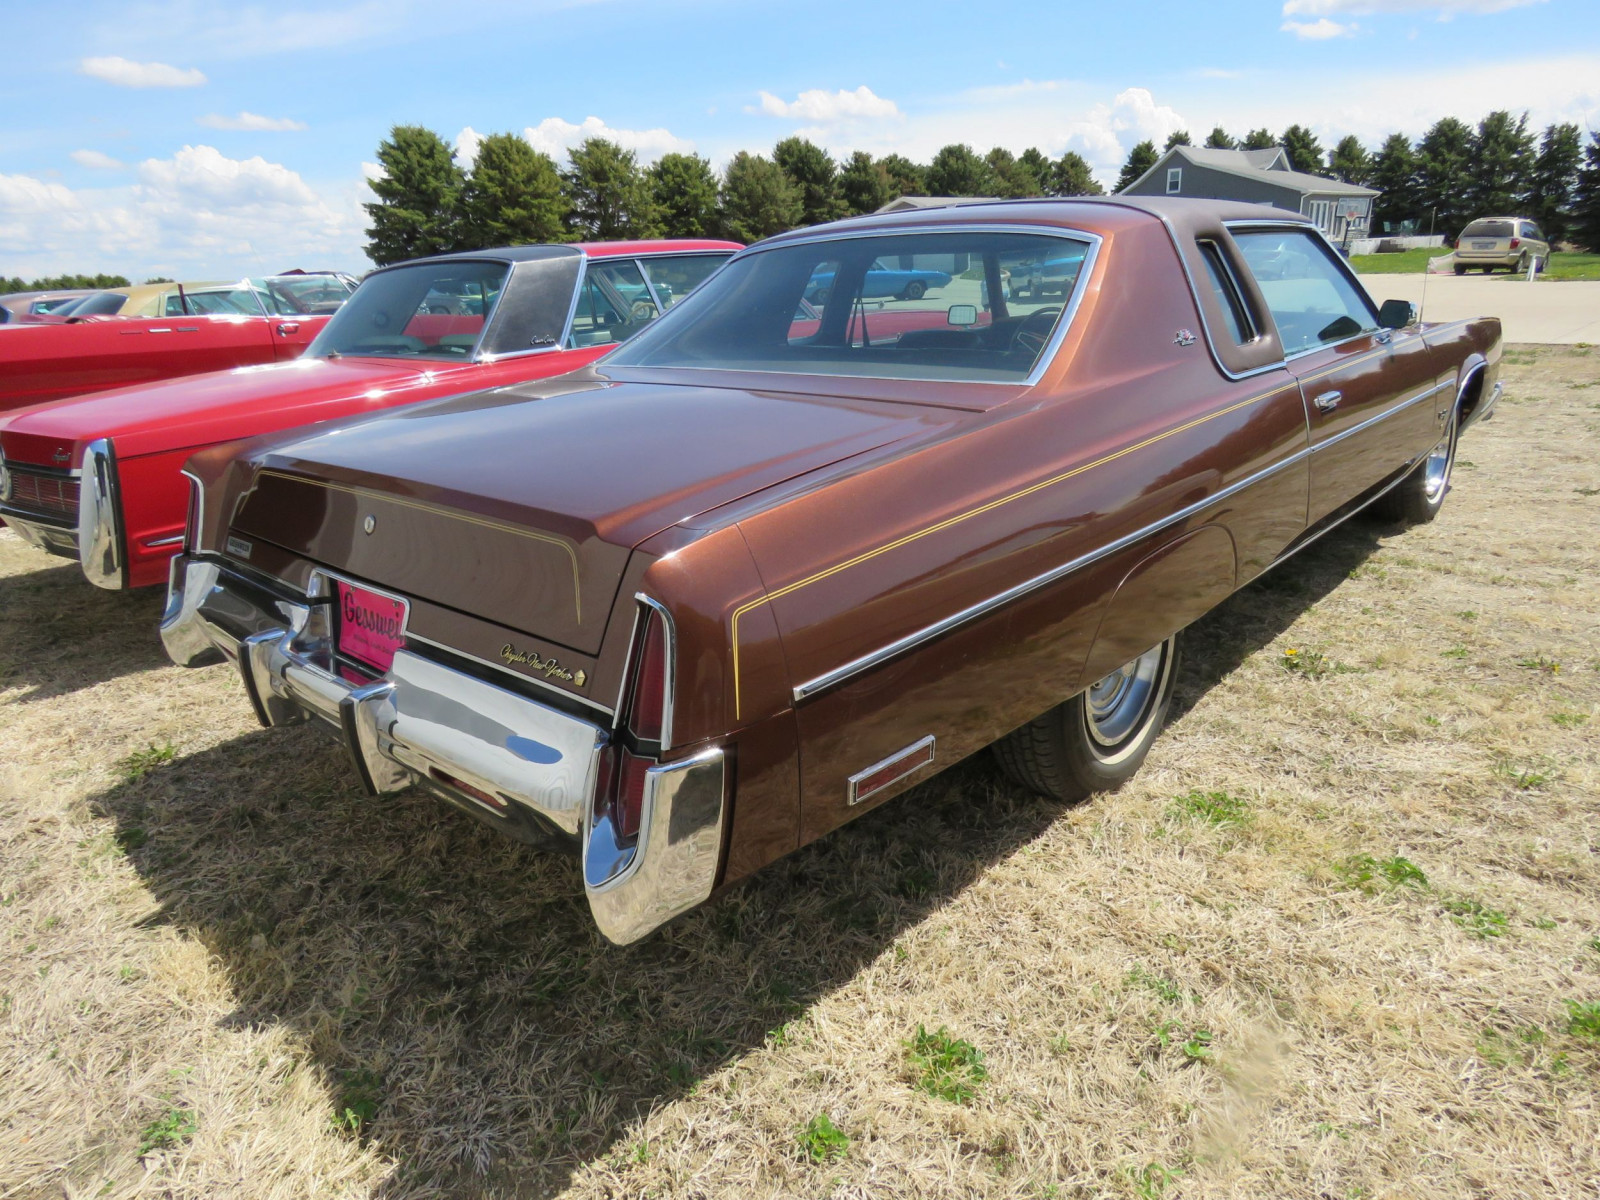 1977 Chrysler New Yorker Brougham with ST. Regis package - Image 7